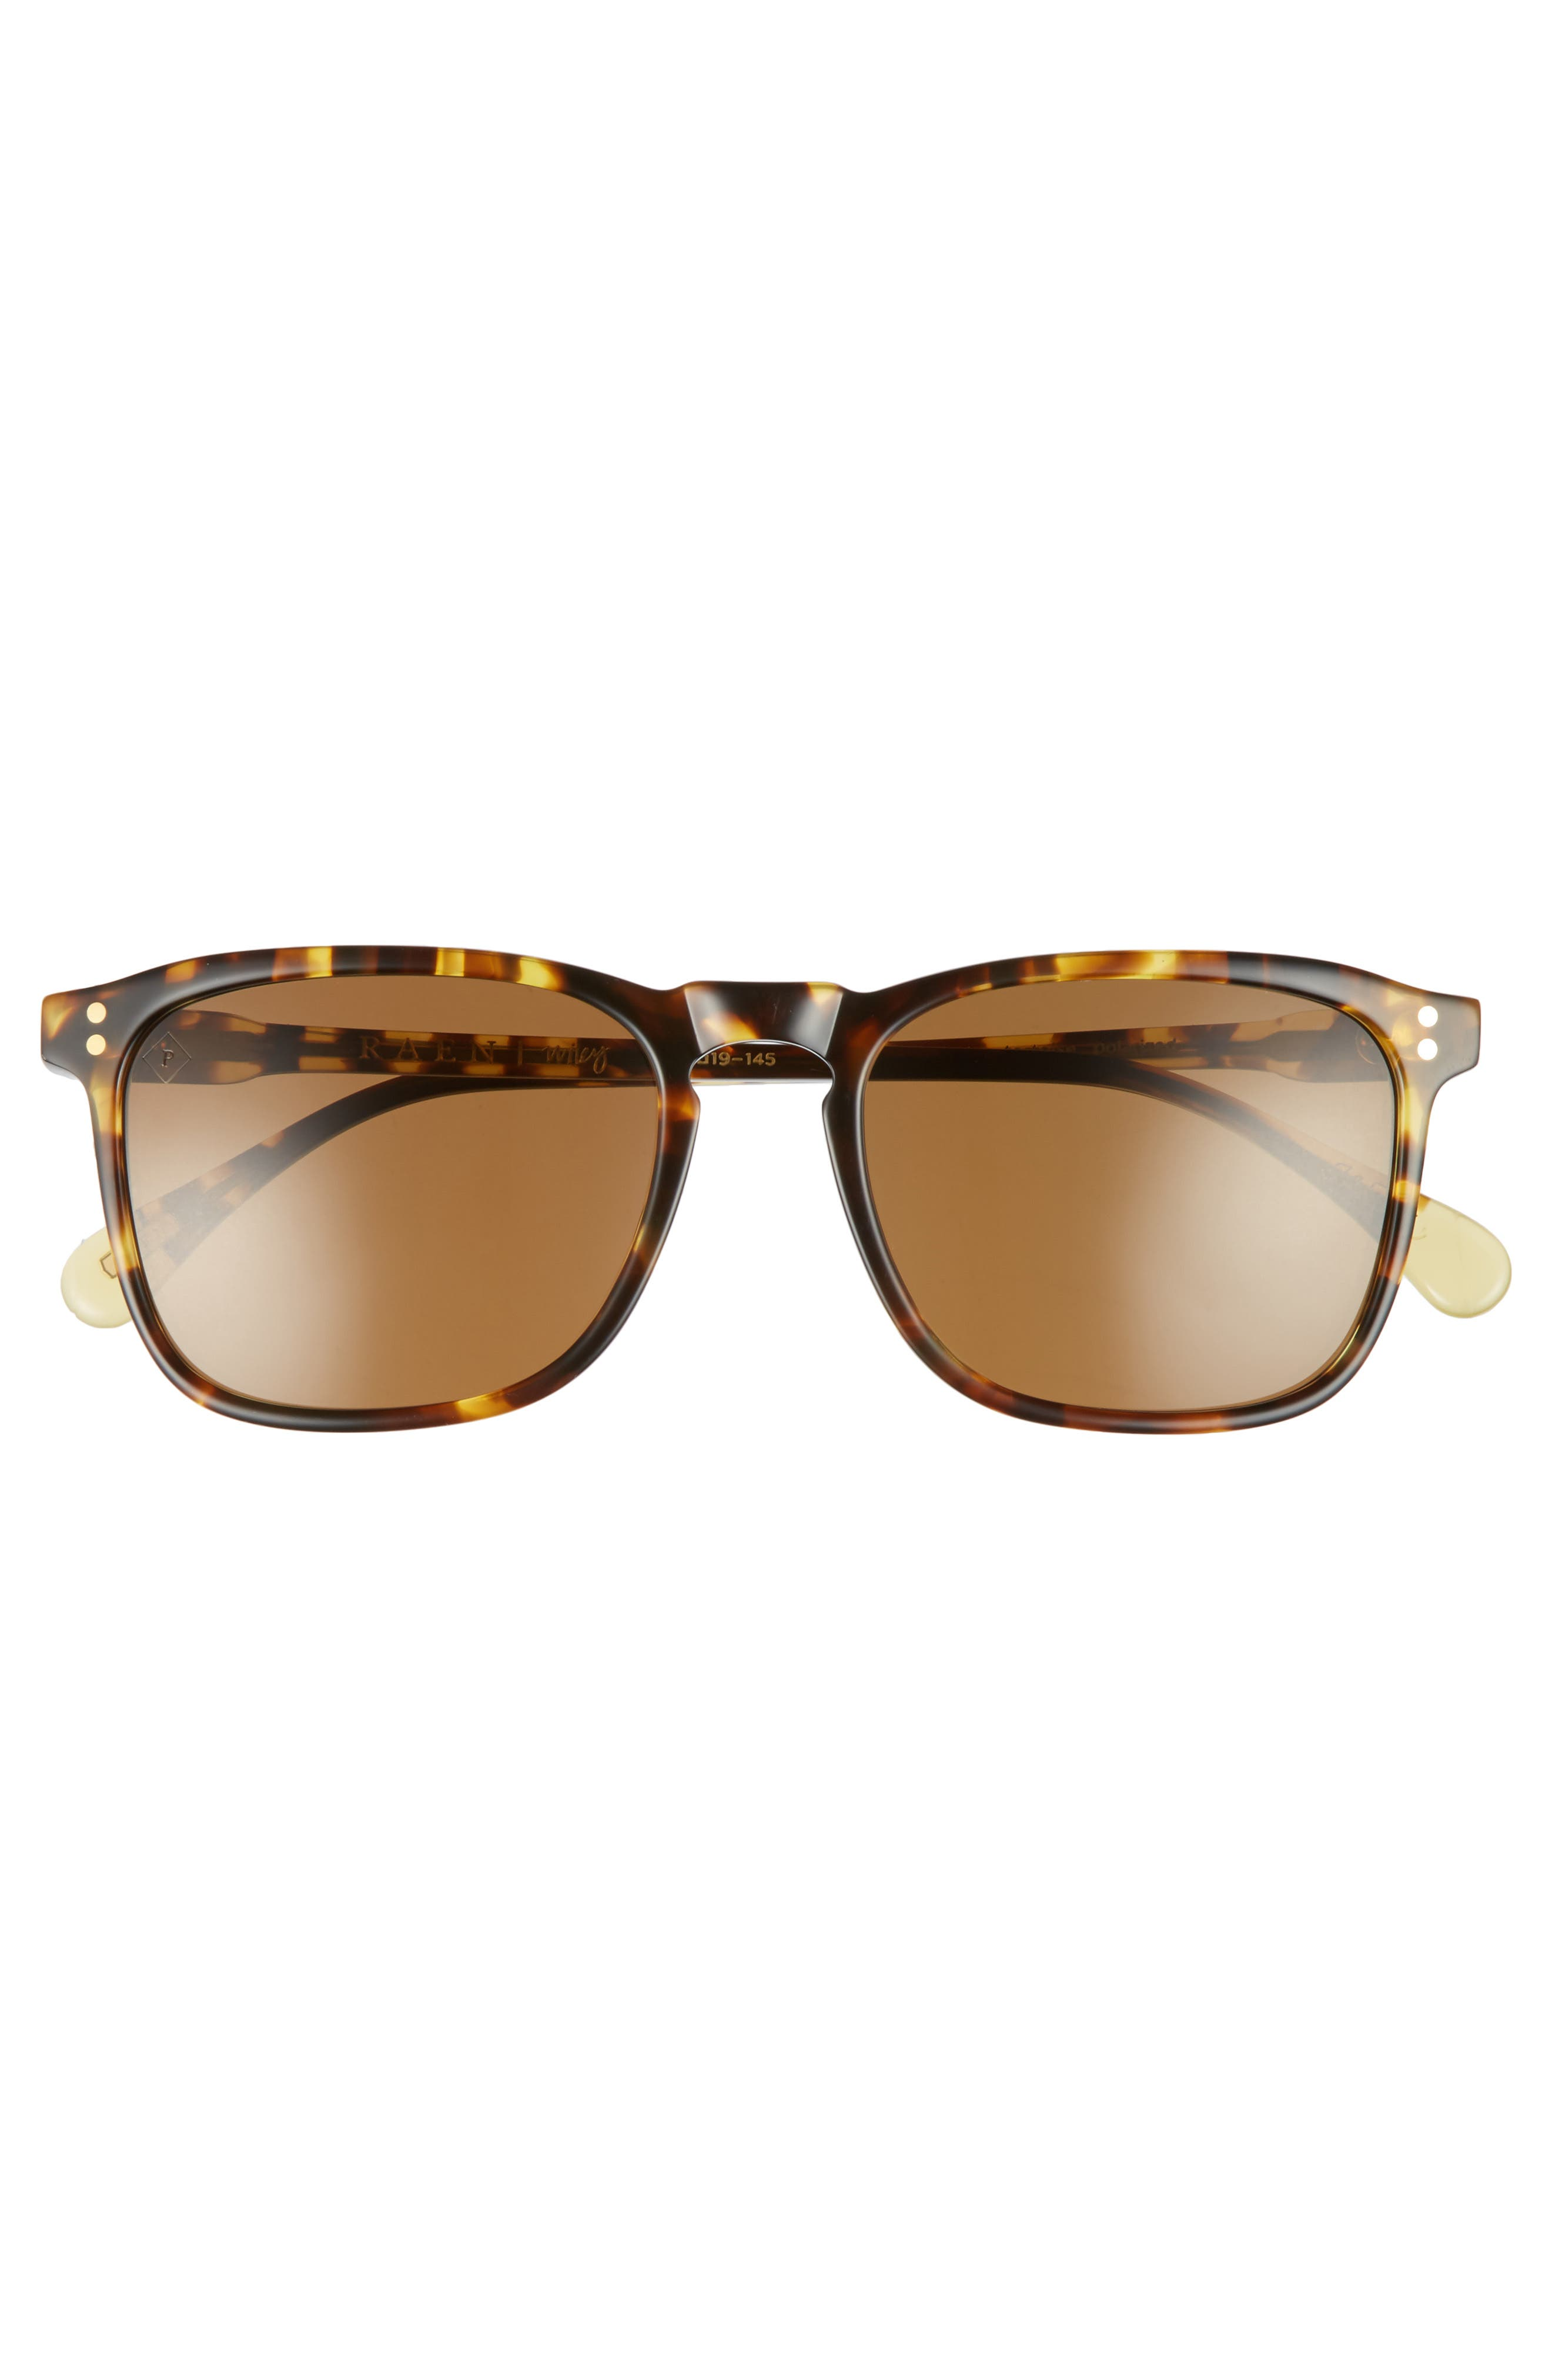 Wiley 54mm Polarized Sunglasses,                             Alternate thumbnail 2, color,                             Tokyo Tortoise/ Brown